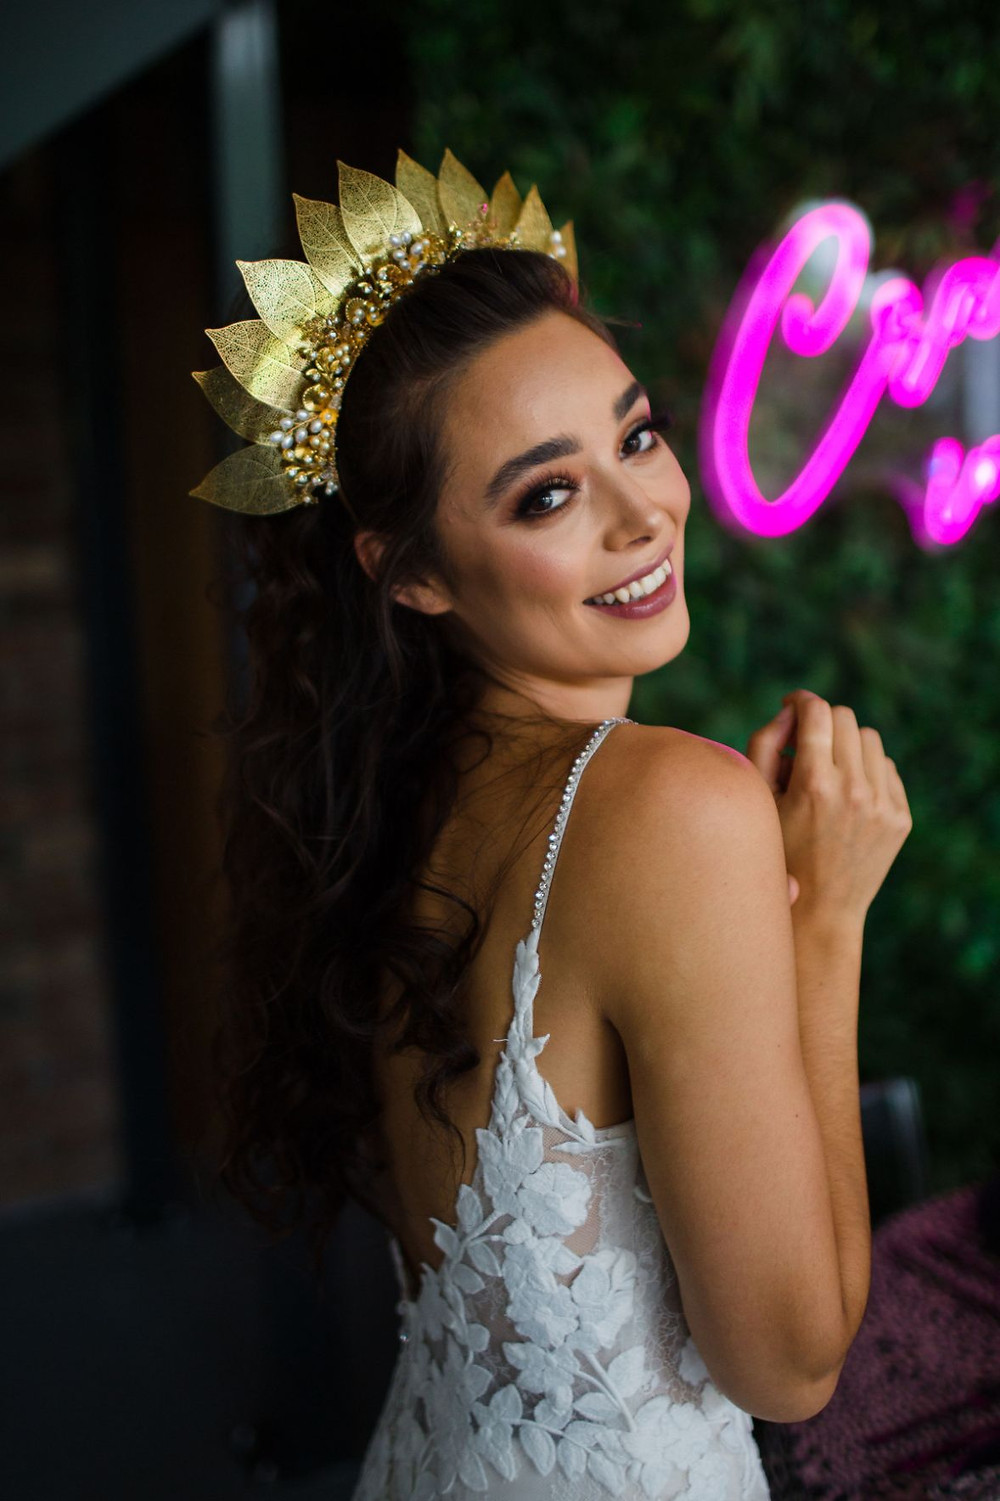 Bride wearing lace dress with thin straps and a gold statement wedding headpiece with leaves, crystals and pearls